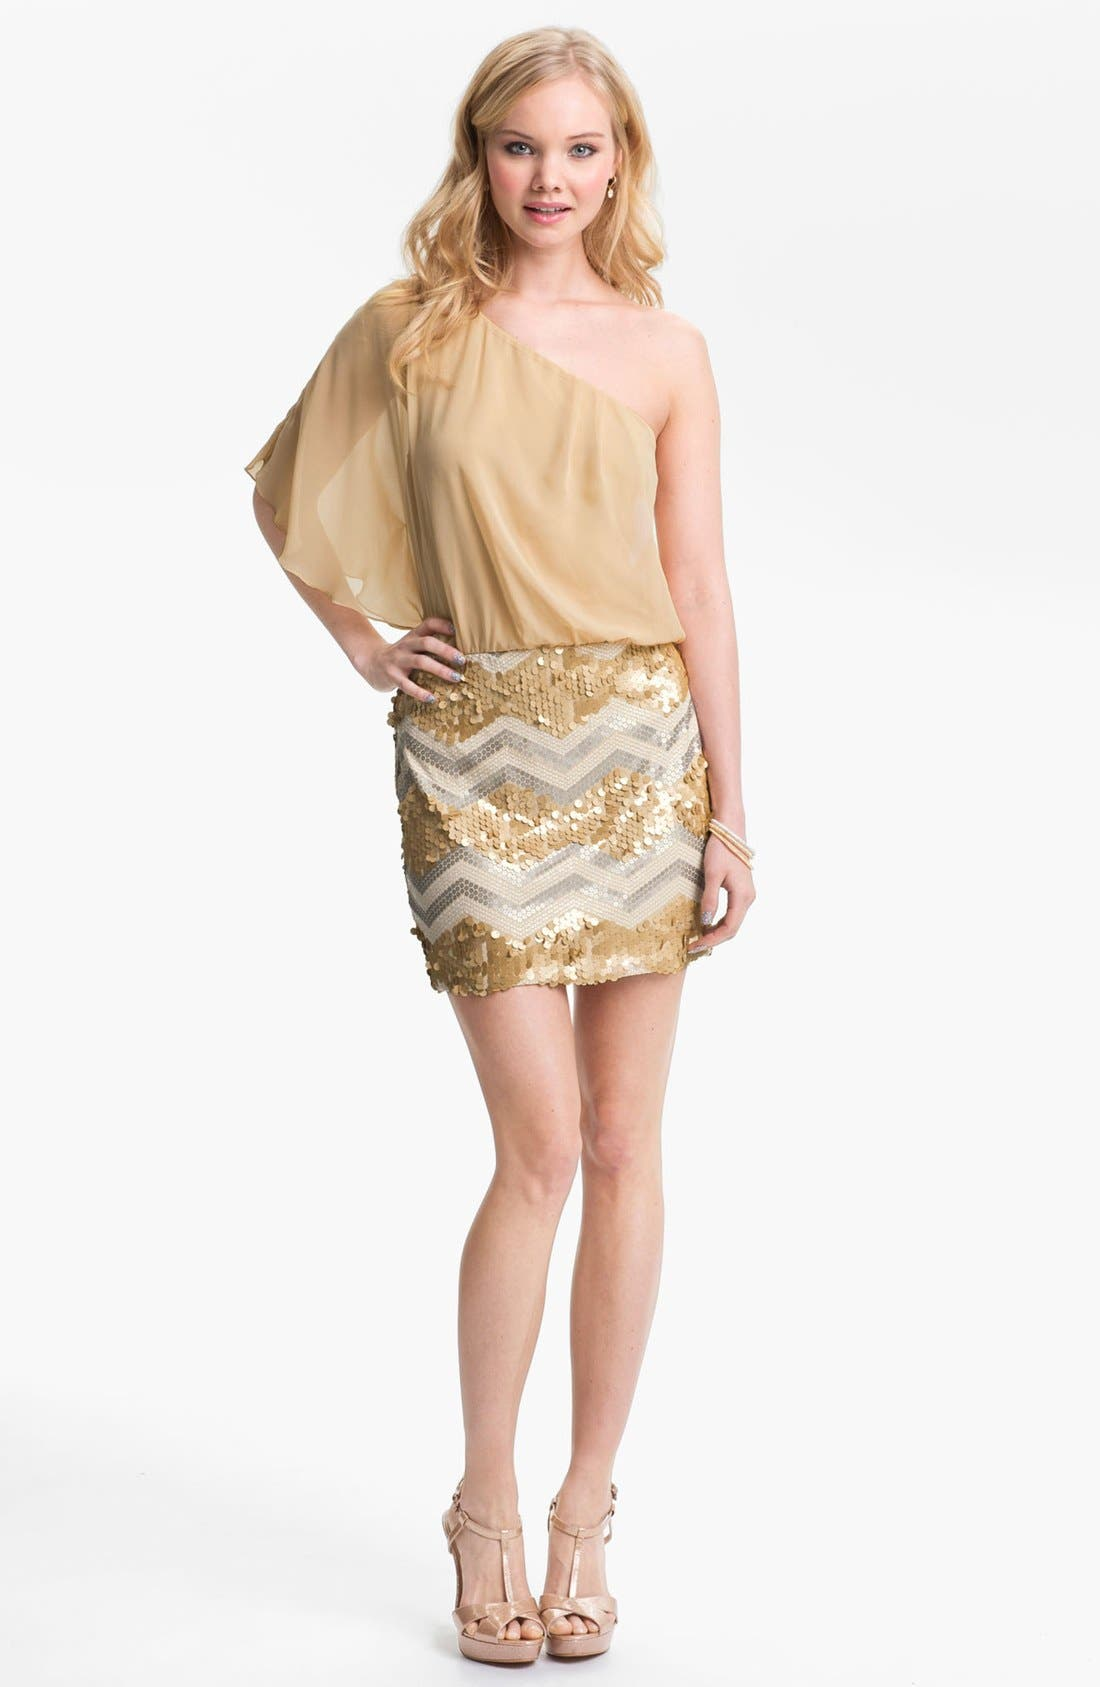 Main Image - As U Wish One-Shoulder Sequin Skirt Dress (Juniors)